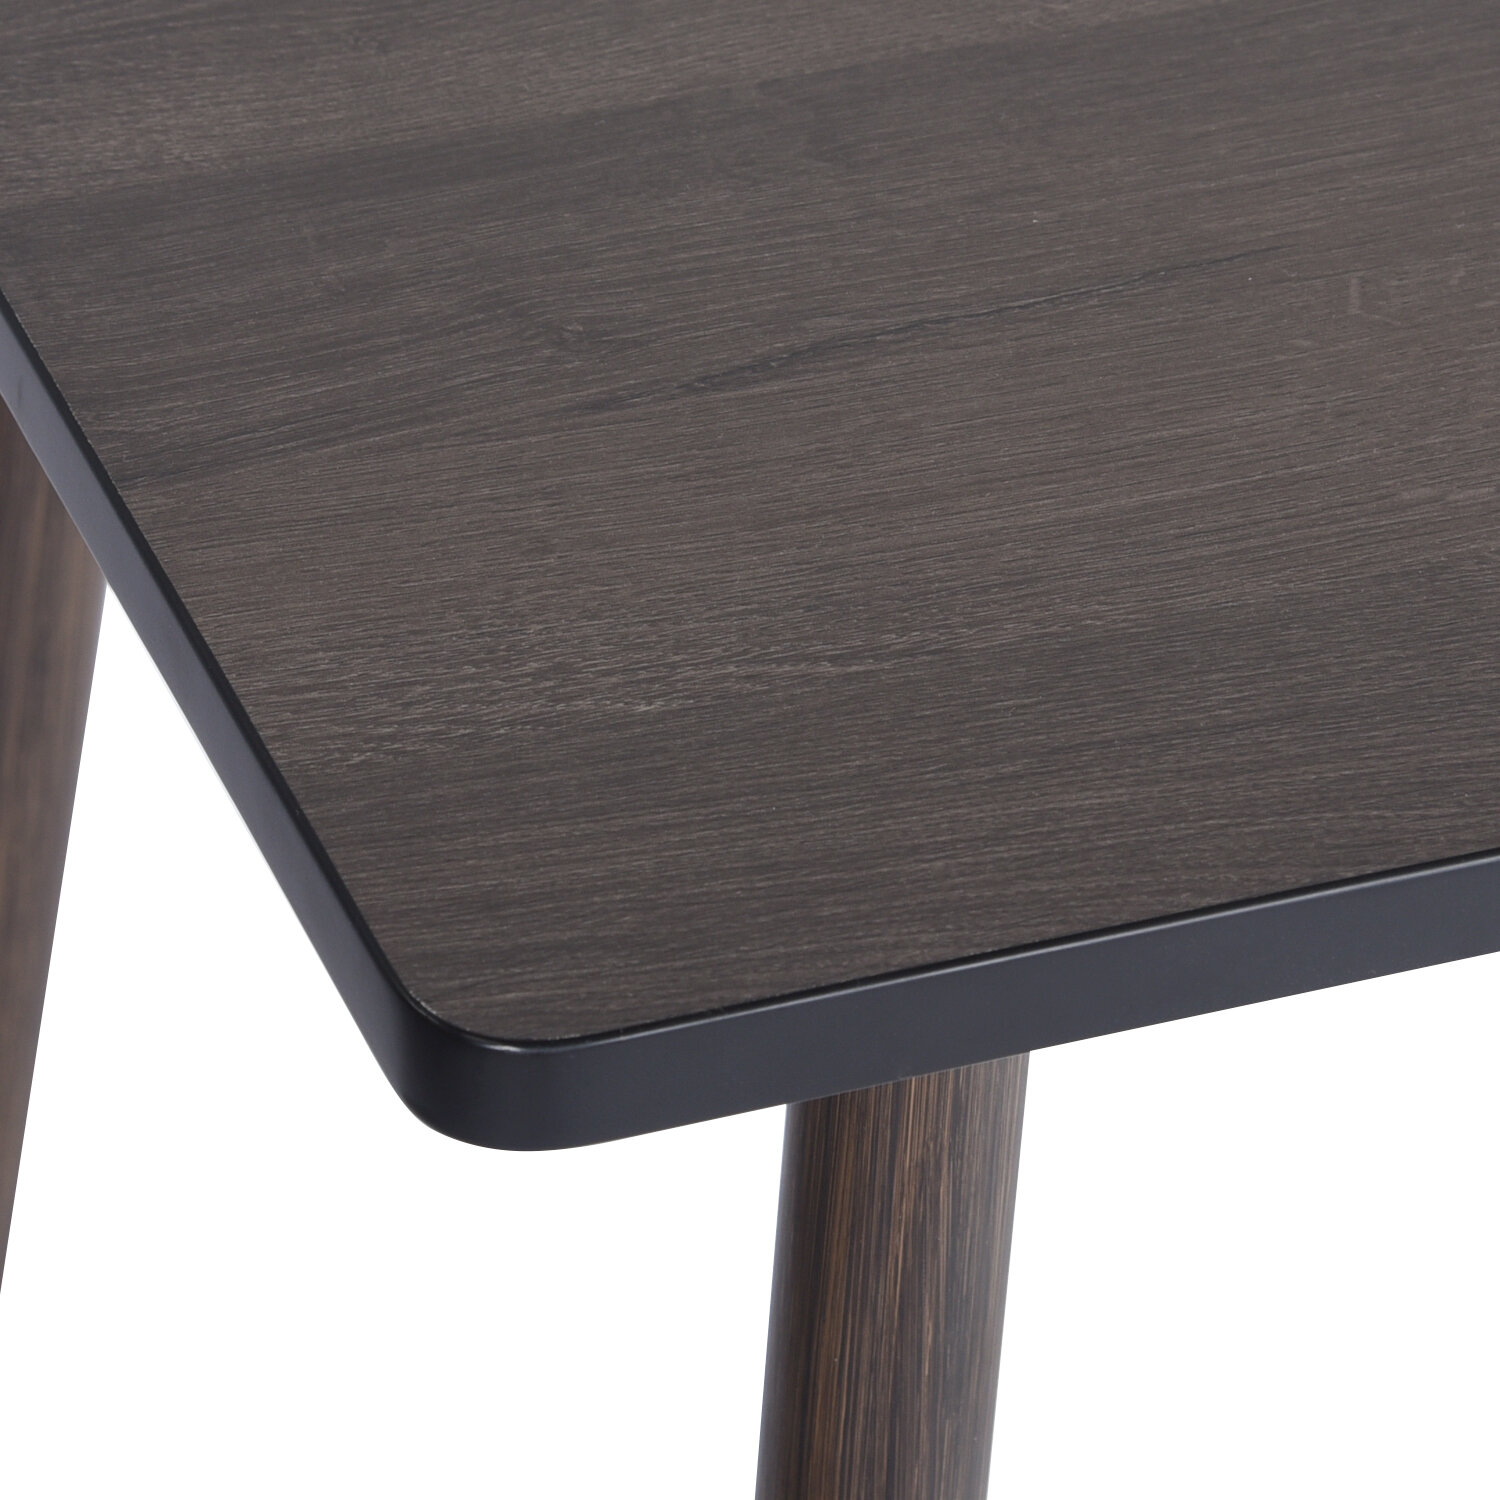 Details About George Oliver Gerhart Dining Table